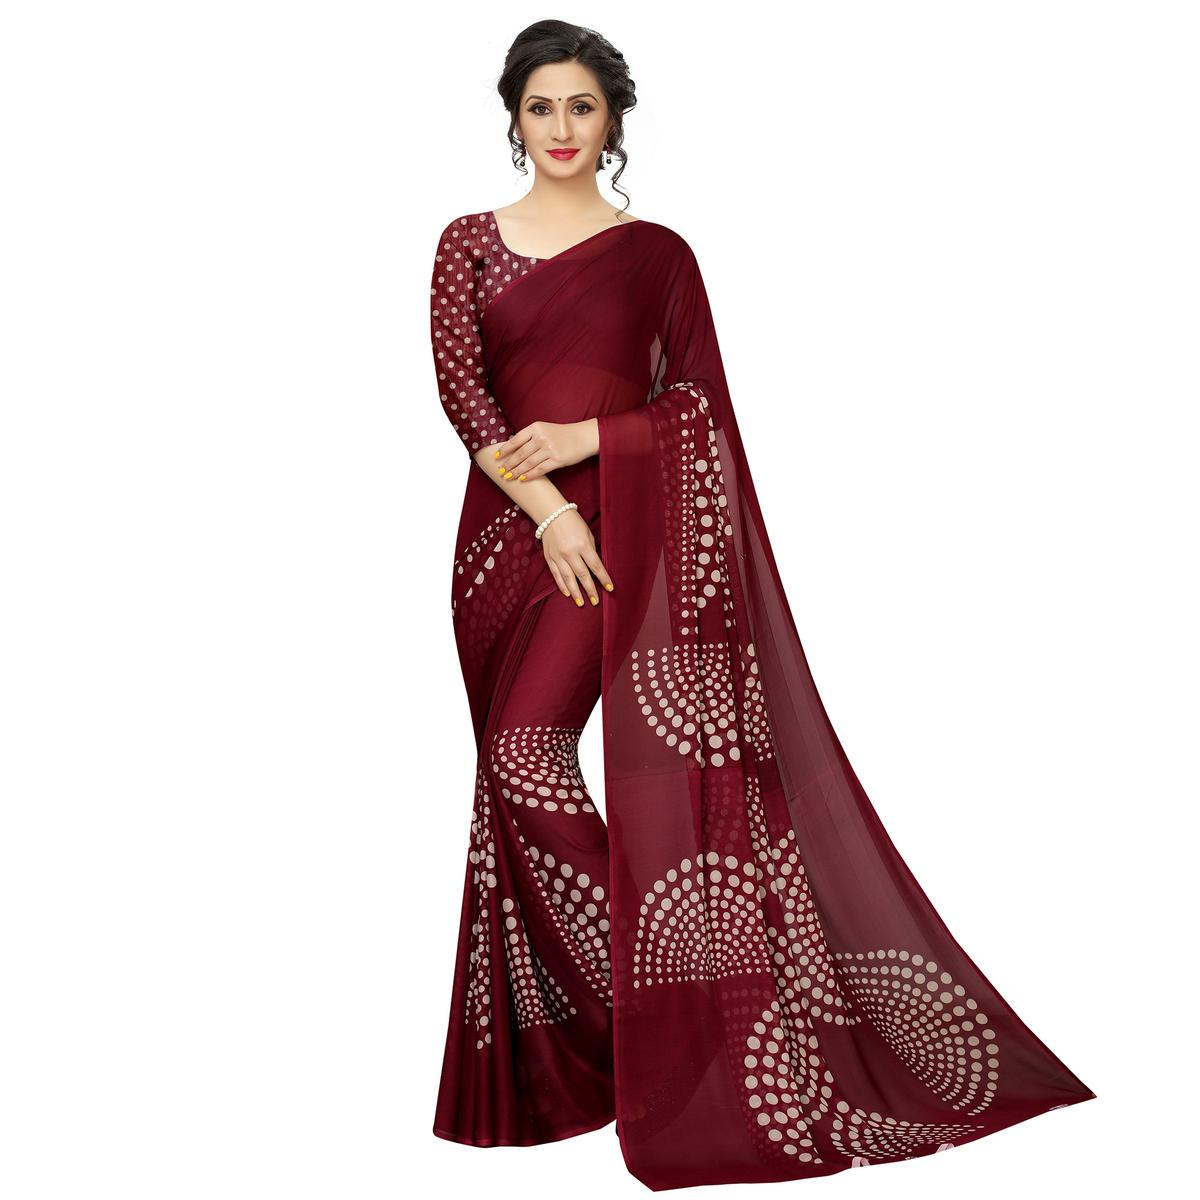 Delightful Pink Colored Casual Printed Georgette Saree